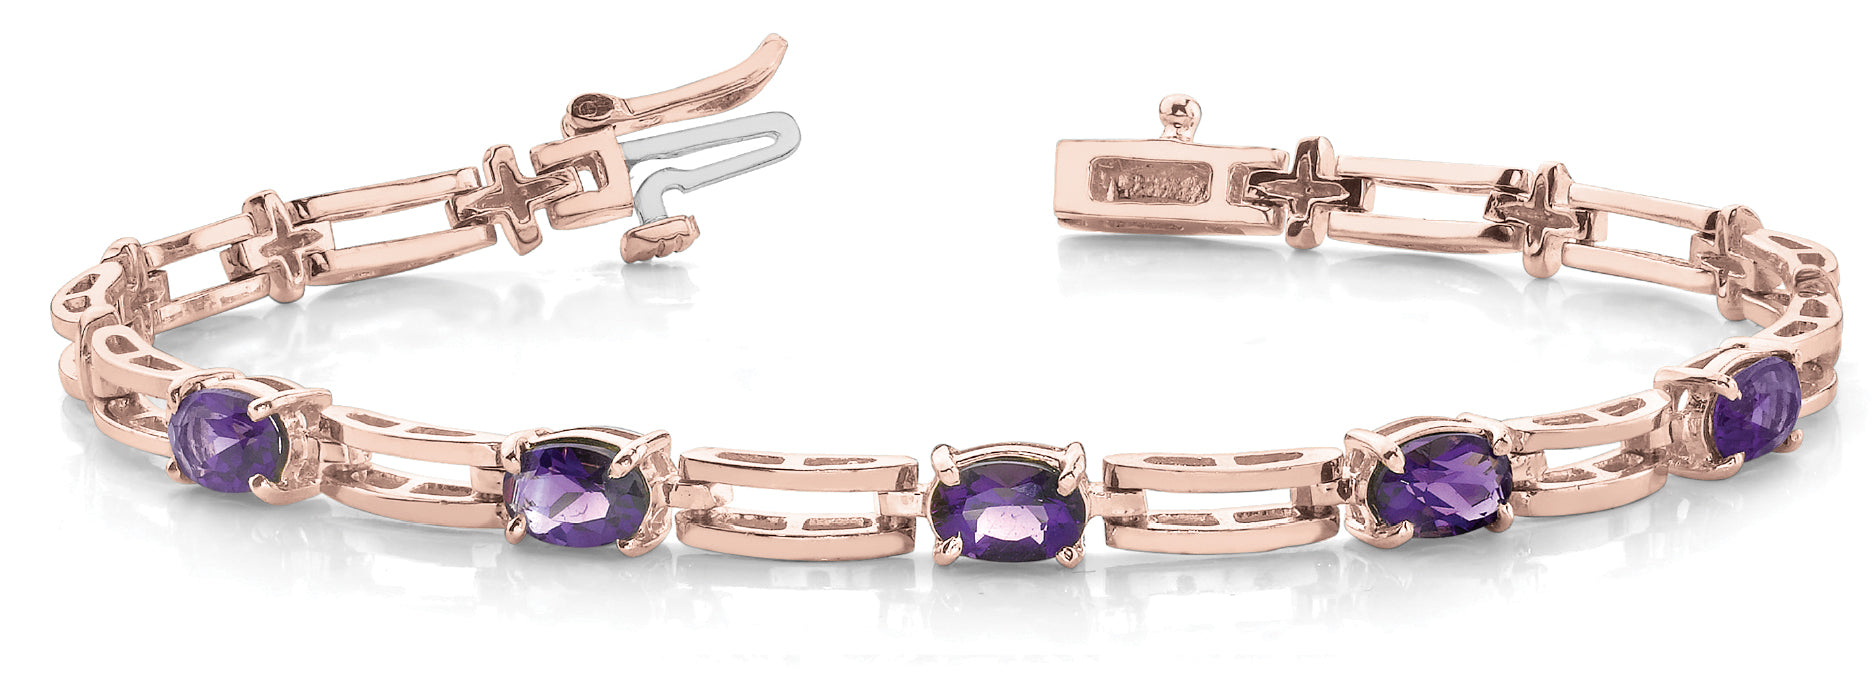 Amethyst 5.85ct Bracelet - 14kt Rose Gold